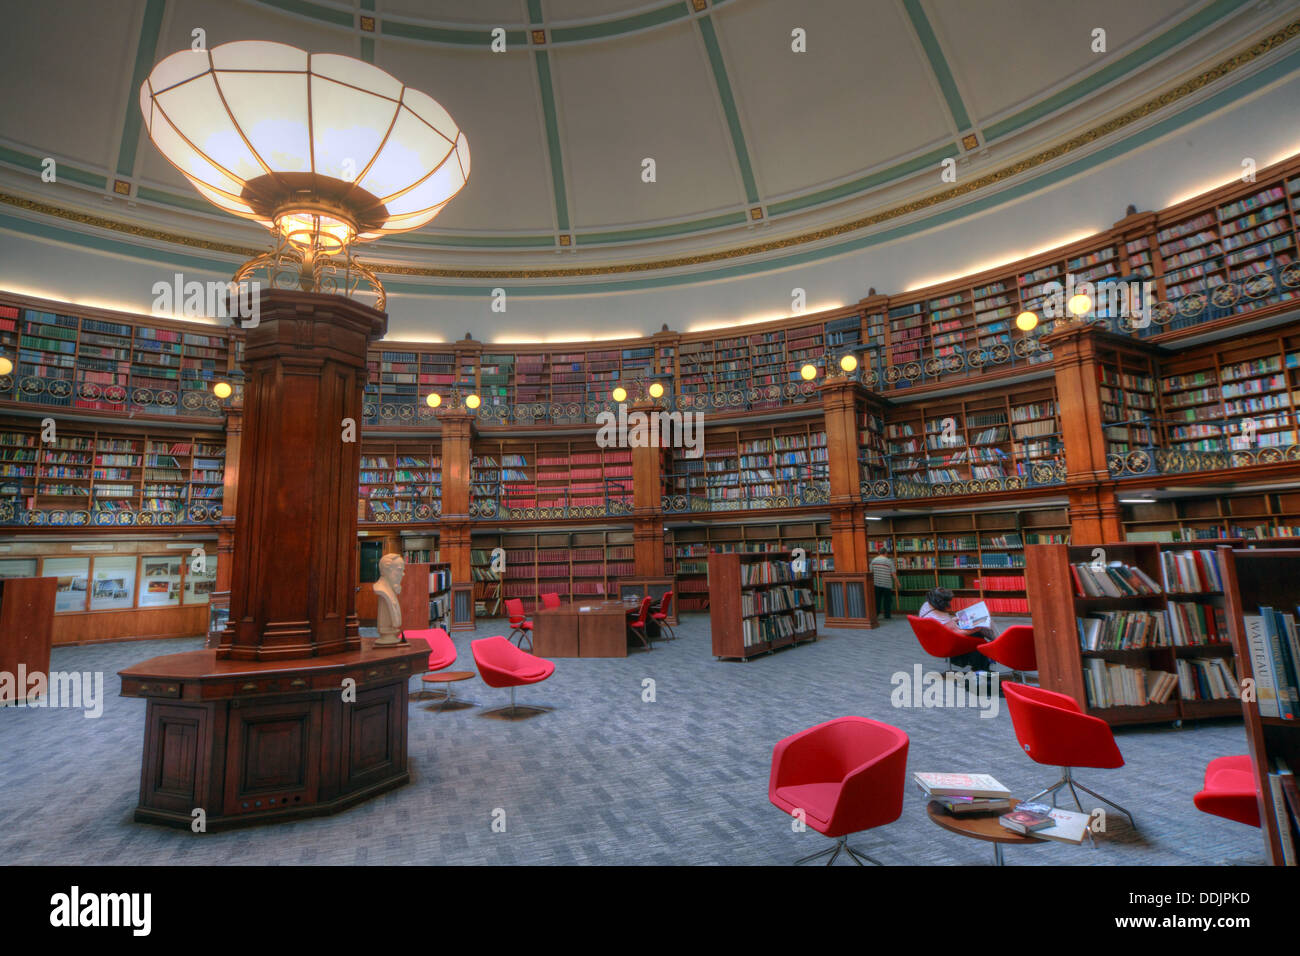 Liverpool central library Picton circular reading rooms - Stock Image